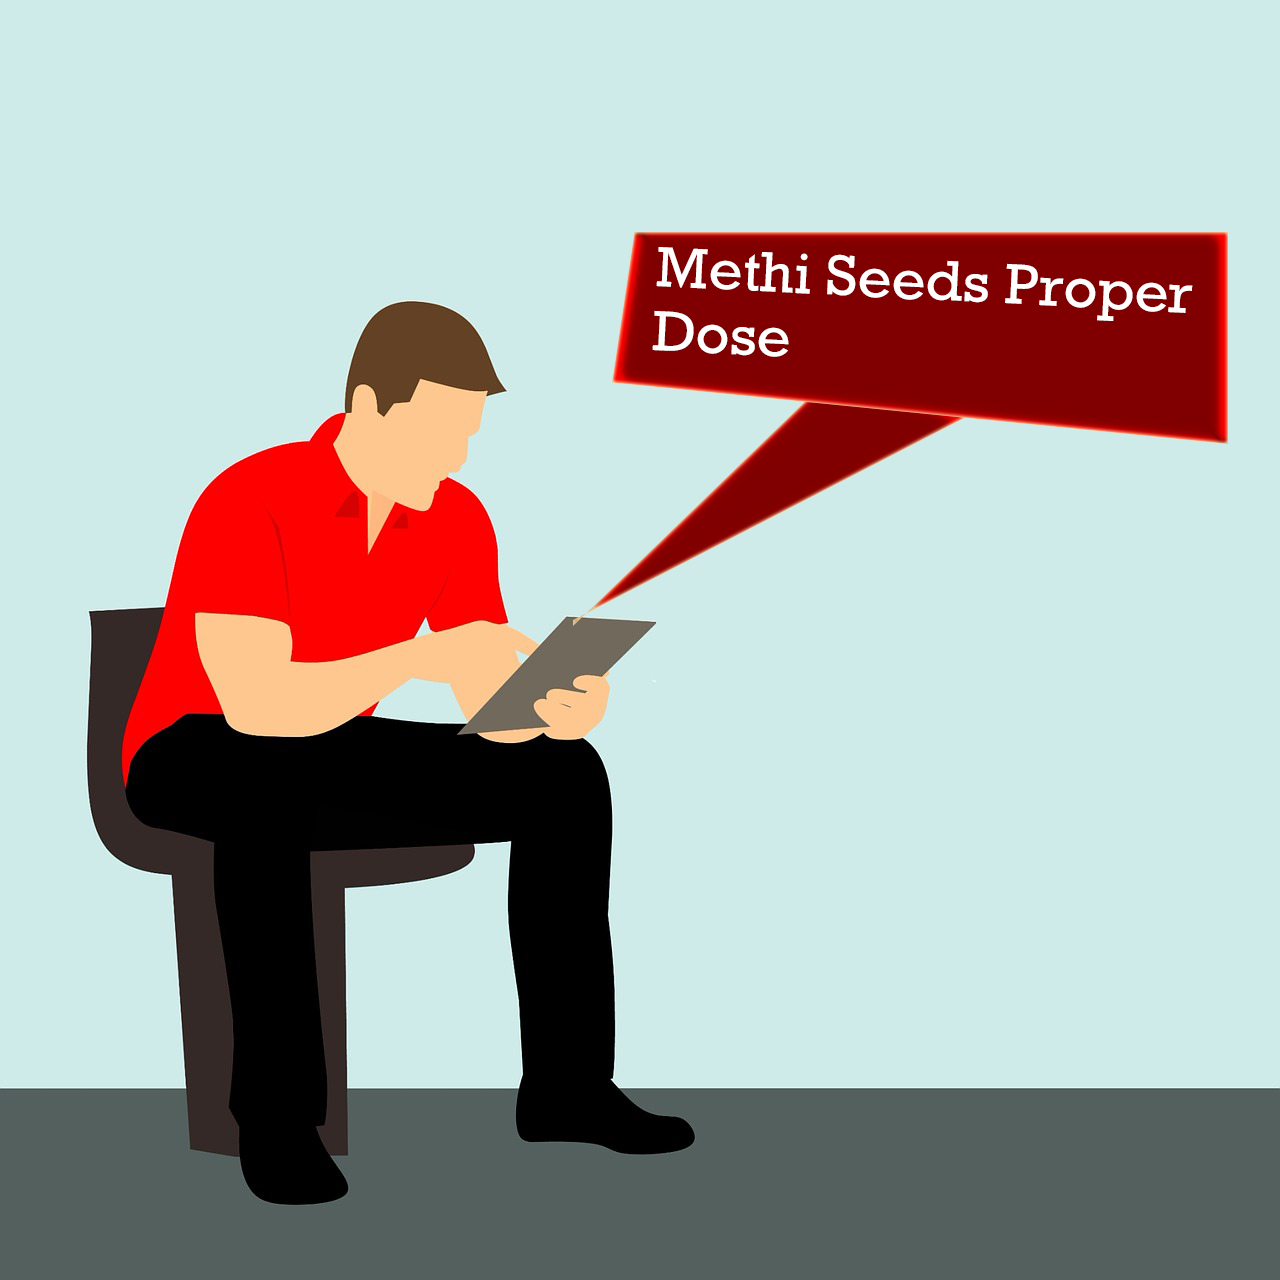 eating methi seeds benefits in weight loss